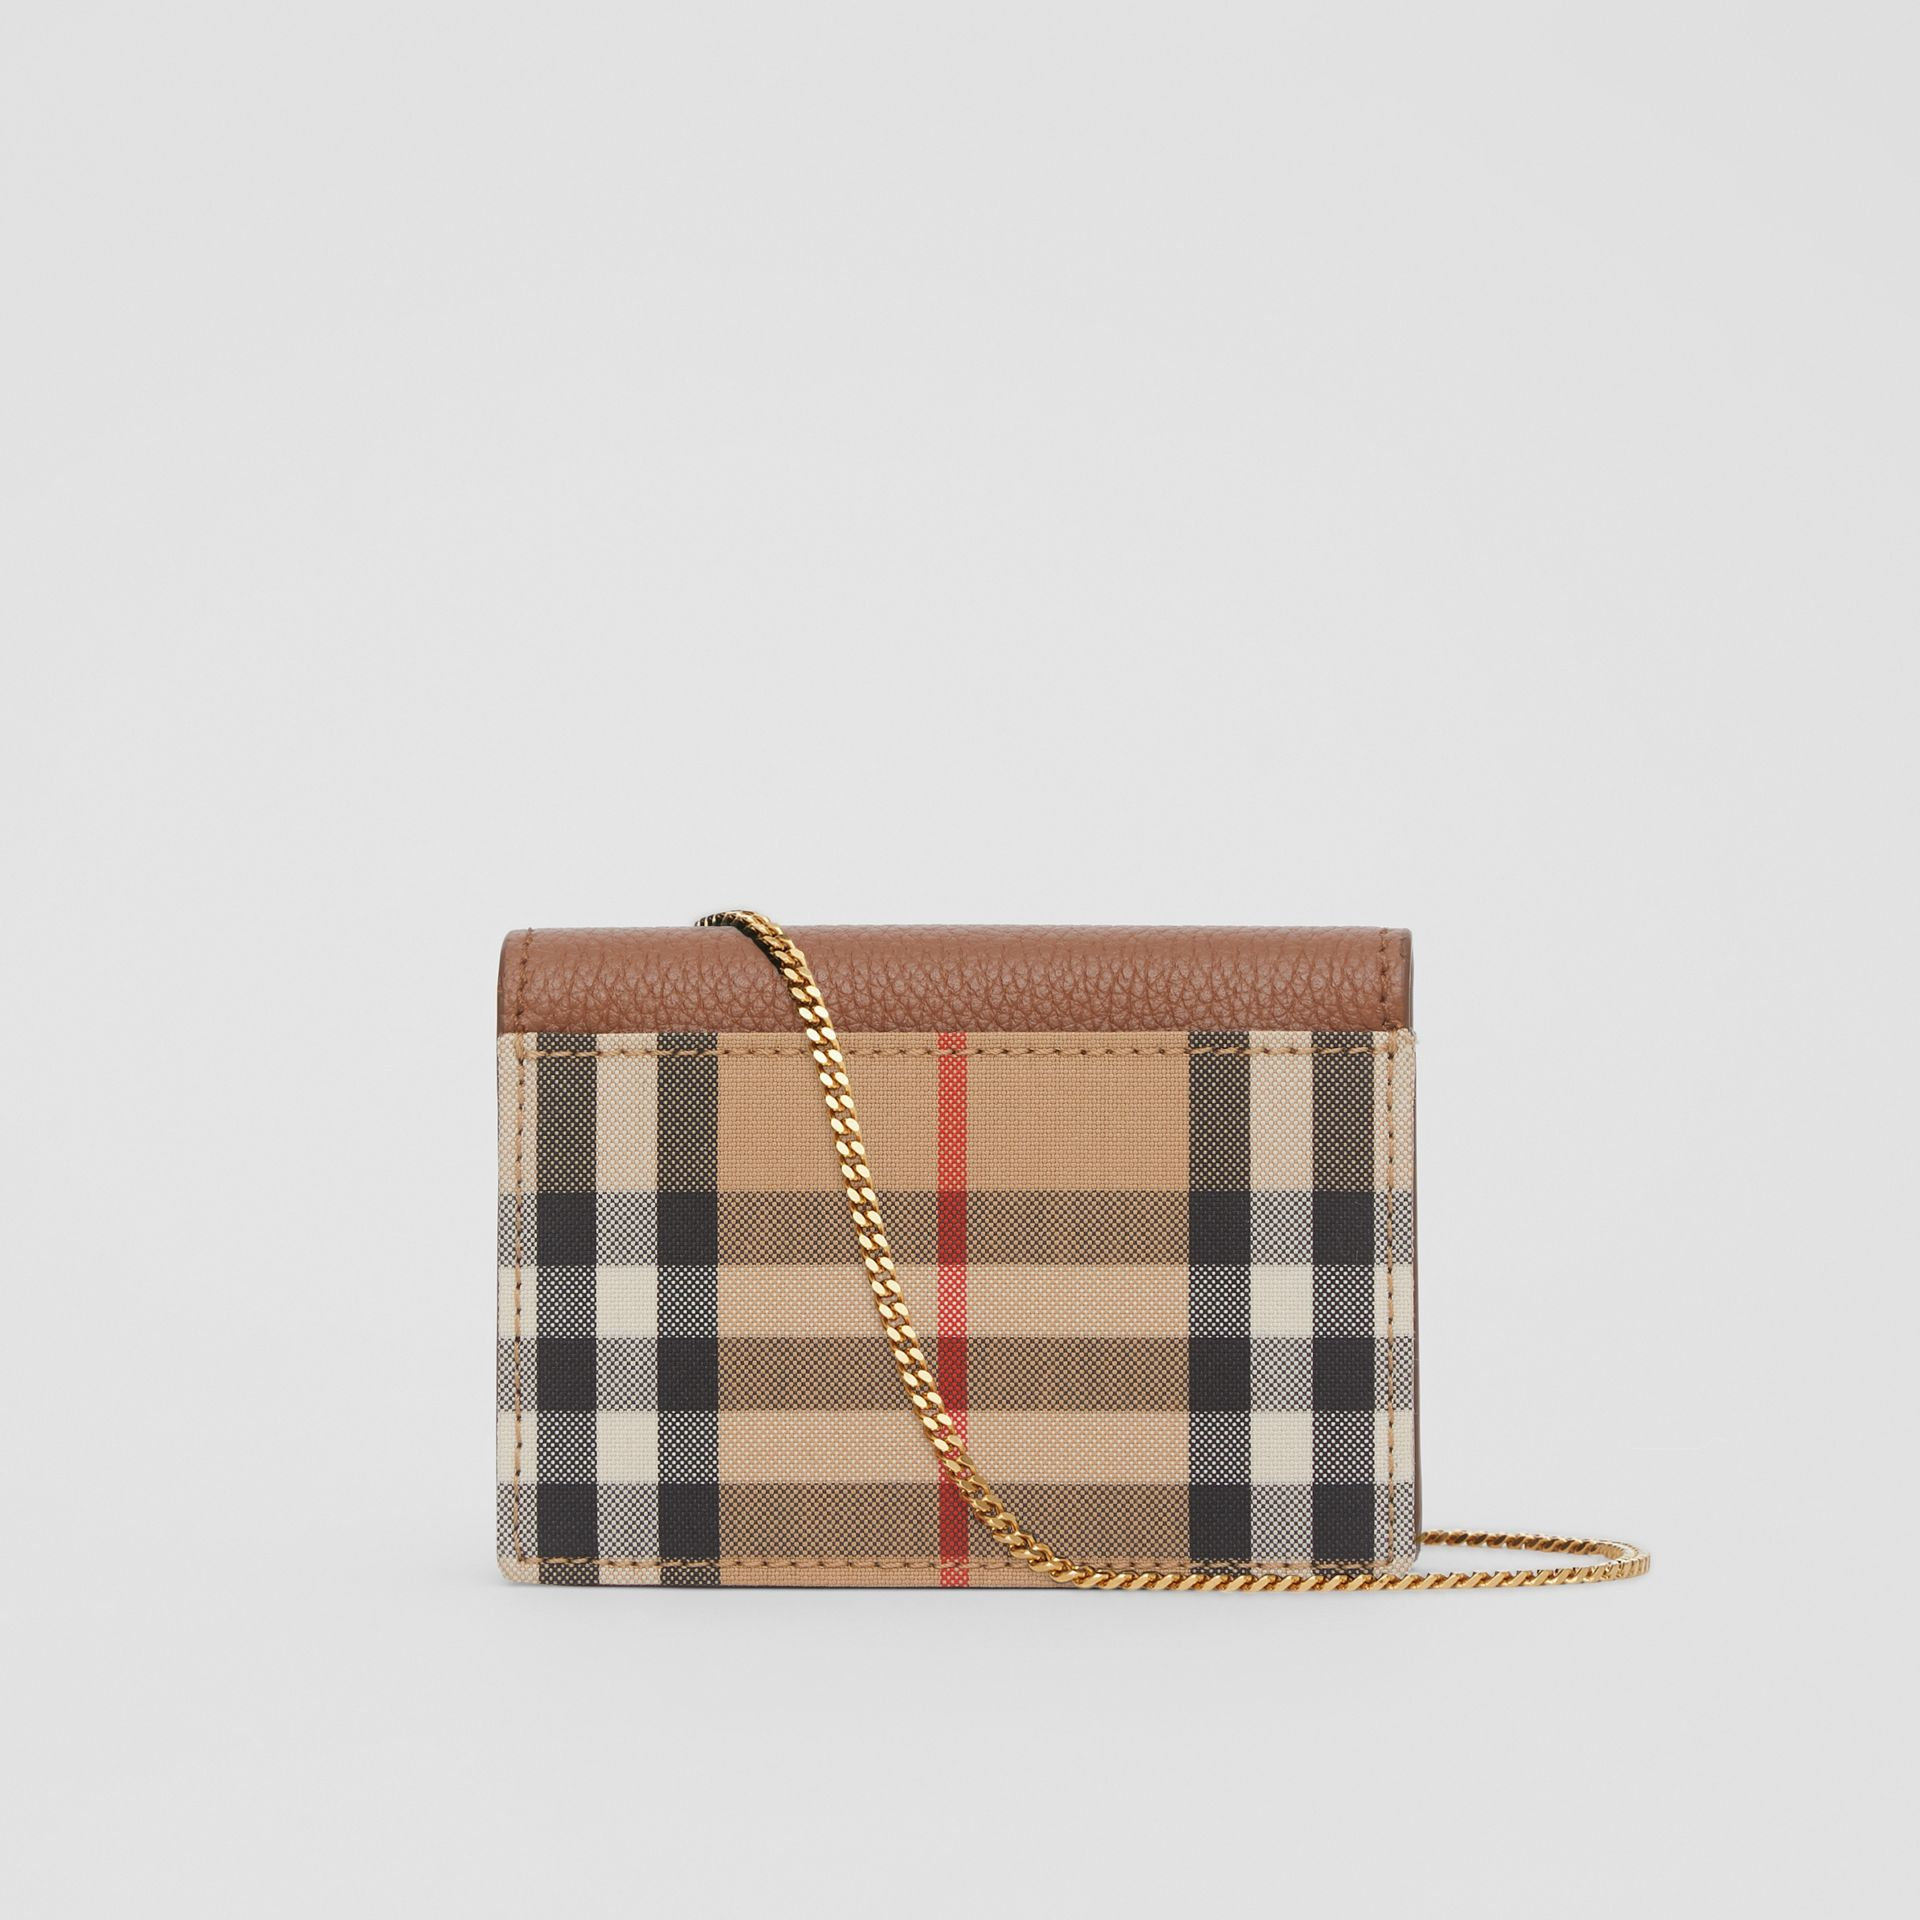 Vintage Check and Leather Card Case with Strap in Tan - Women | Burberry - gallery image 3